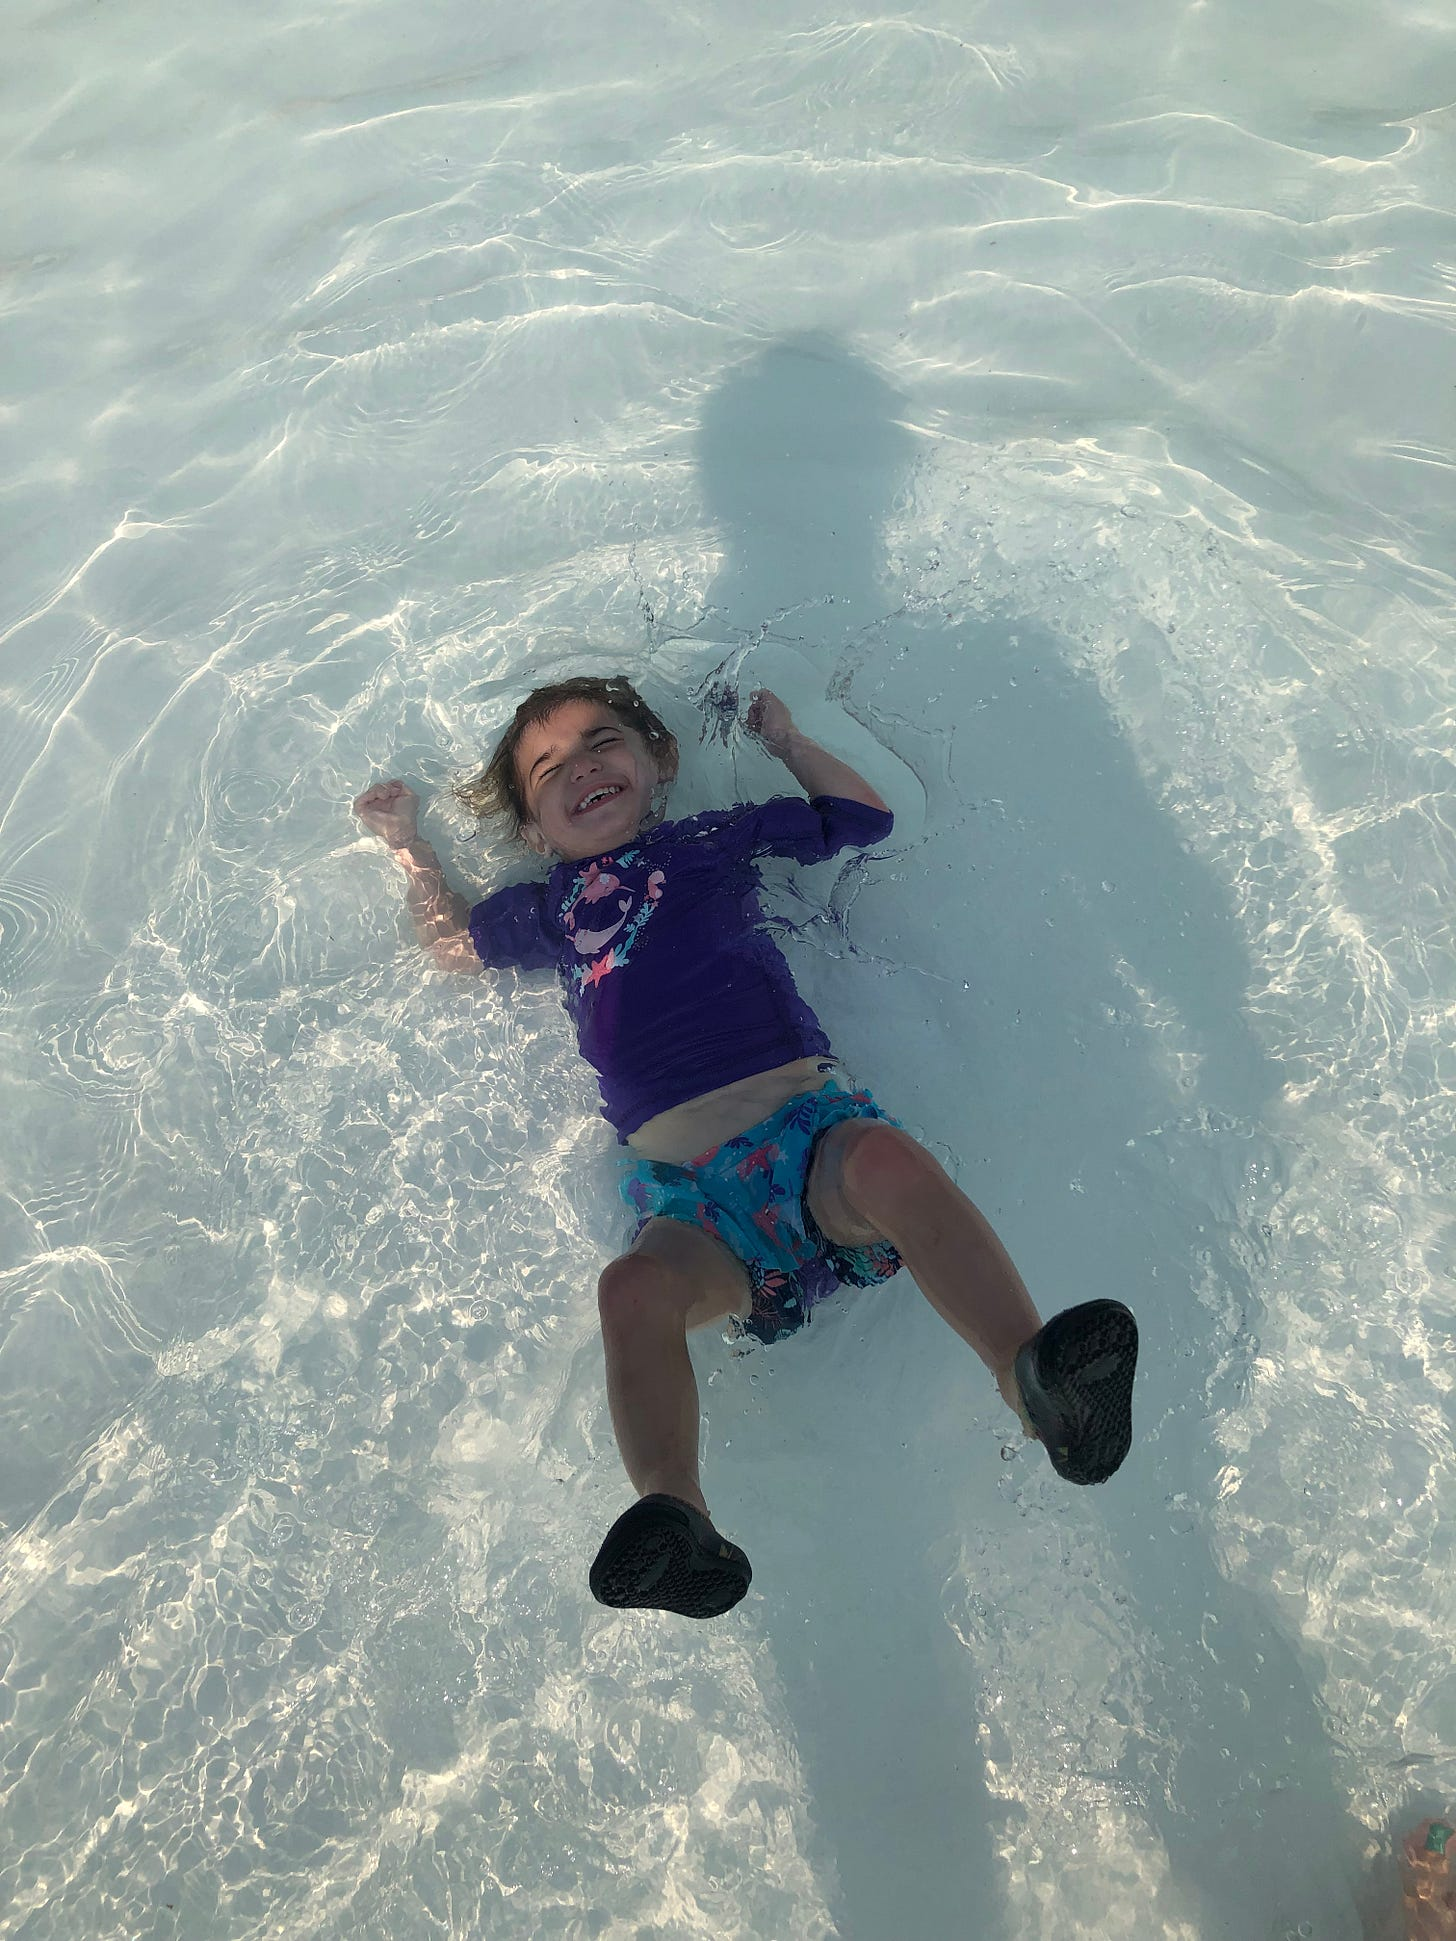 Photograph of a gleeful toddler in a wave pool